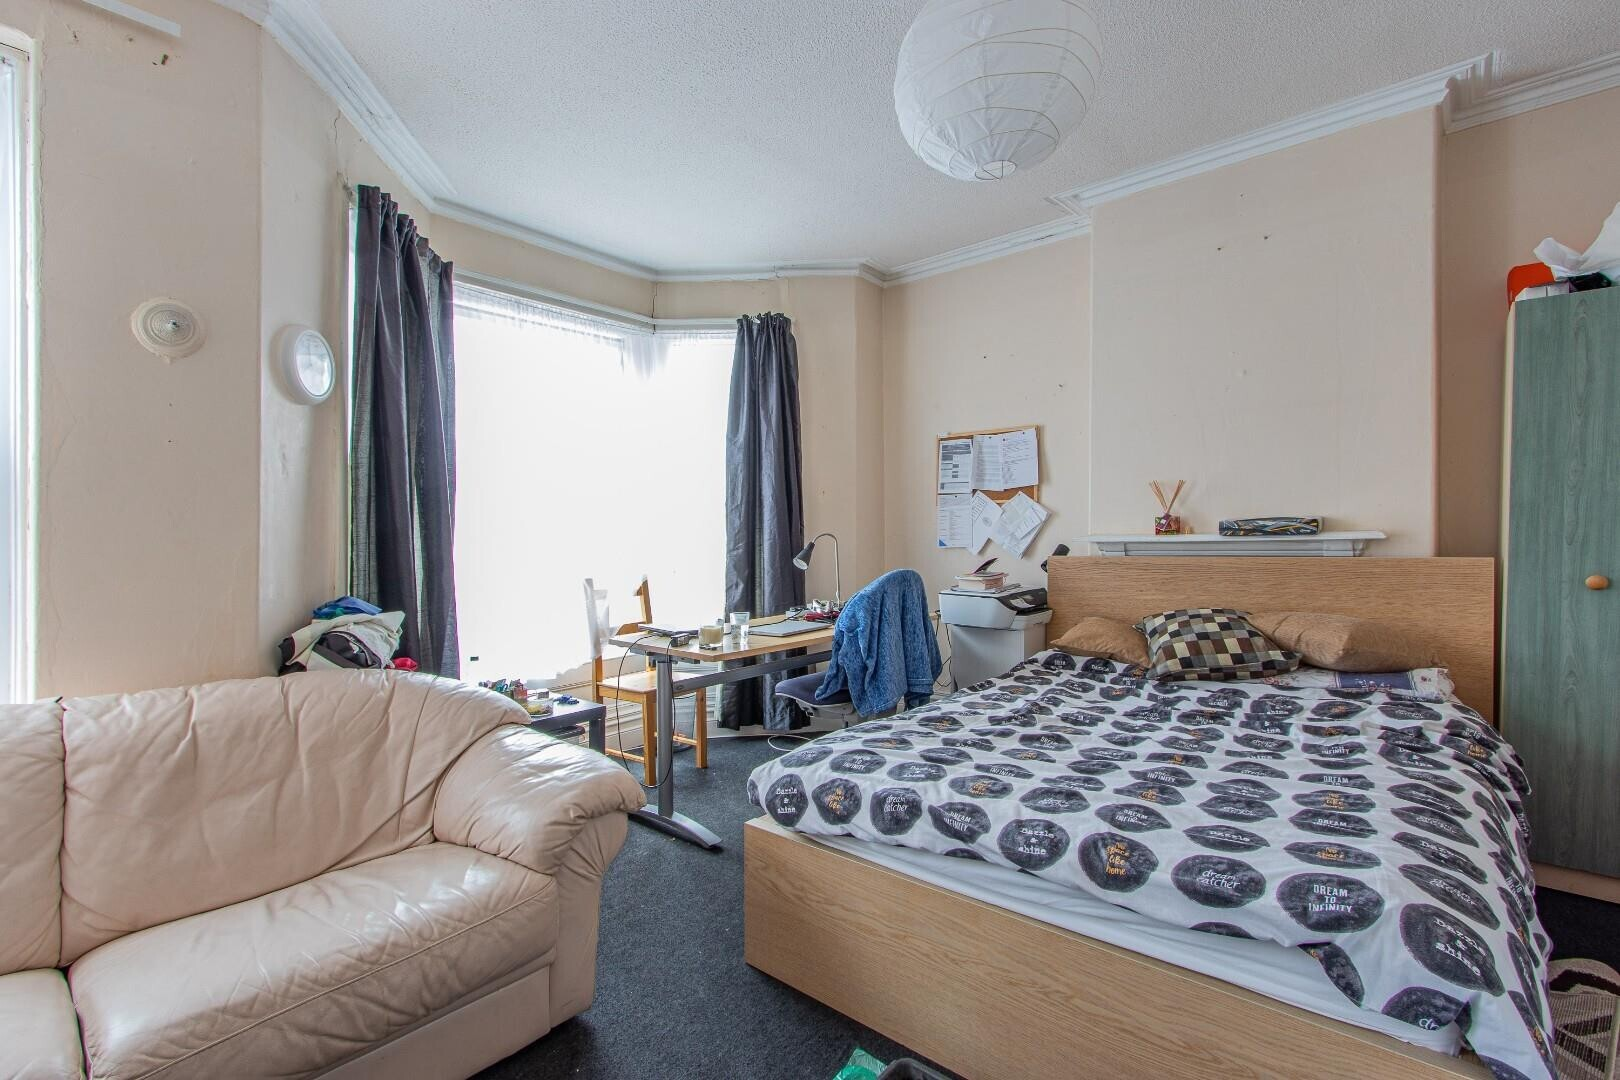 5 bedroom student house in Cathays, Cardiff